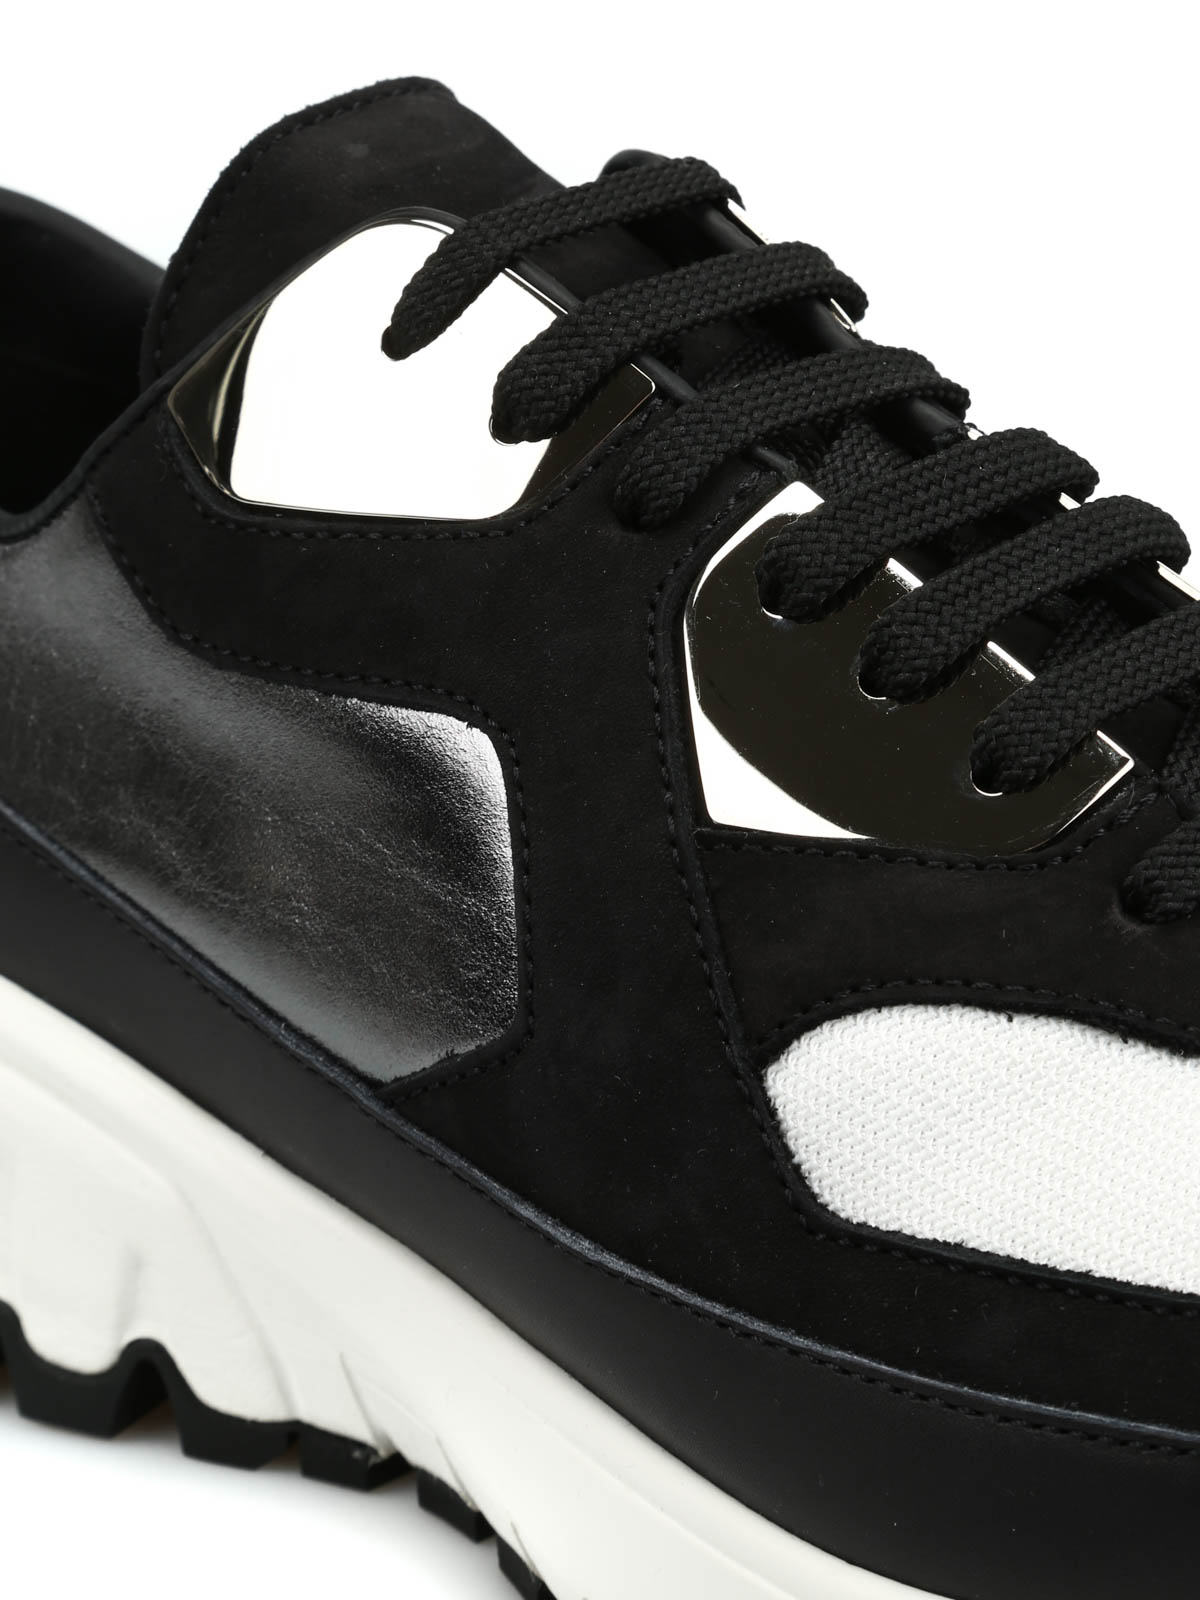 Neil Barrett runner sneakers under $60 for sale zzrONI4gDb